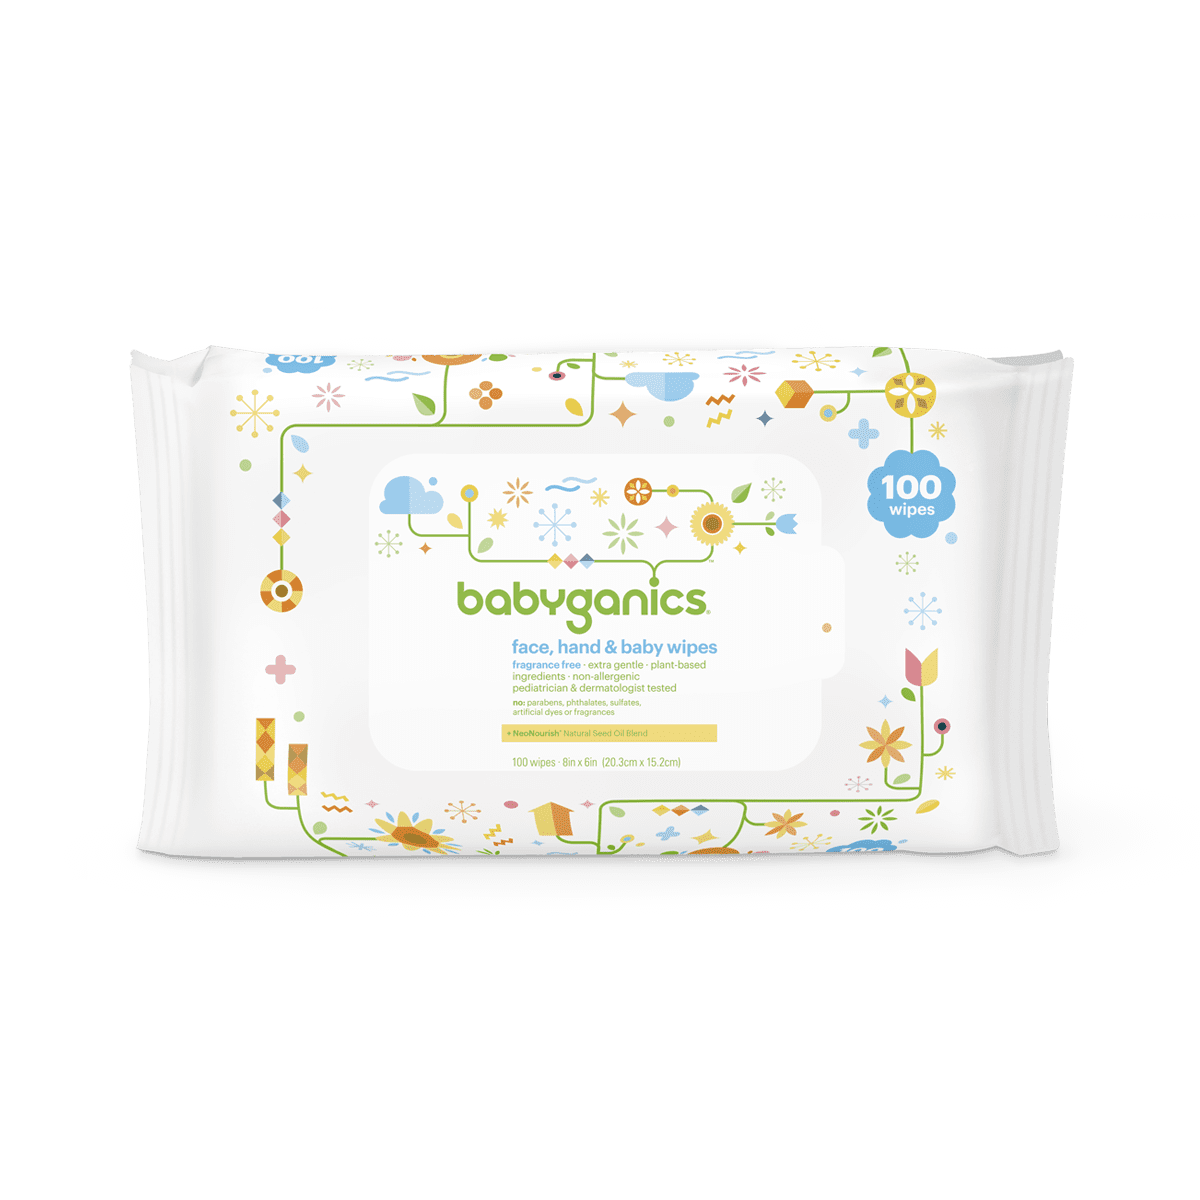 Babyganics Face, Hand & Baby Wipes, Fragrance Free (100 count)